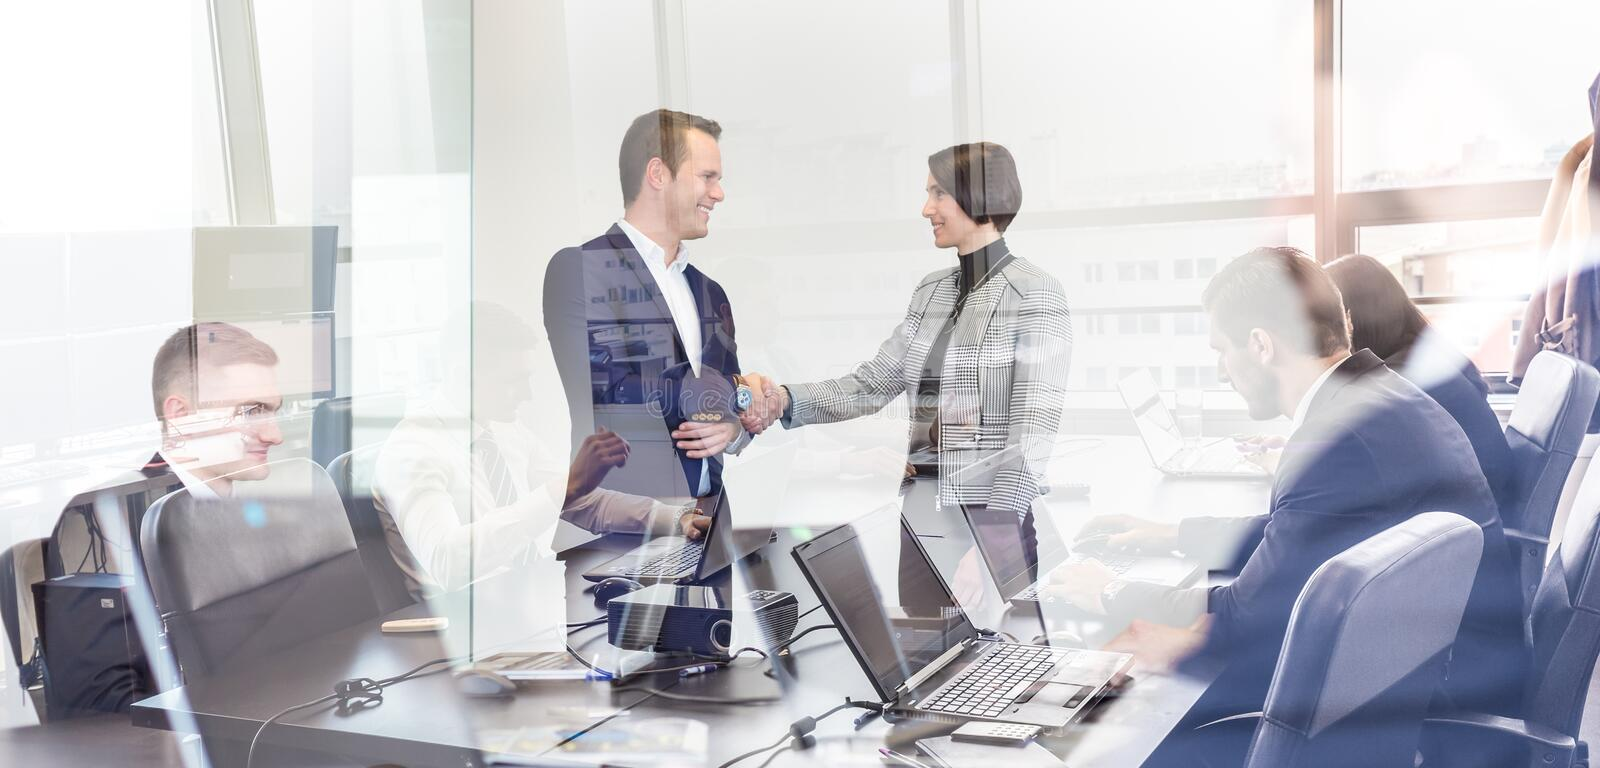 Business people shaking hands in moder corporate office. Sealing a deal. Business people shaking hands, finishing up meeting in corporate office. Businessmen stock photos